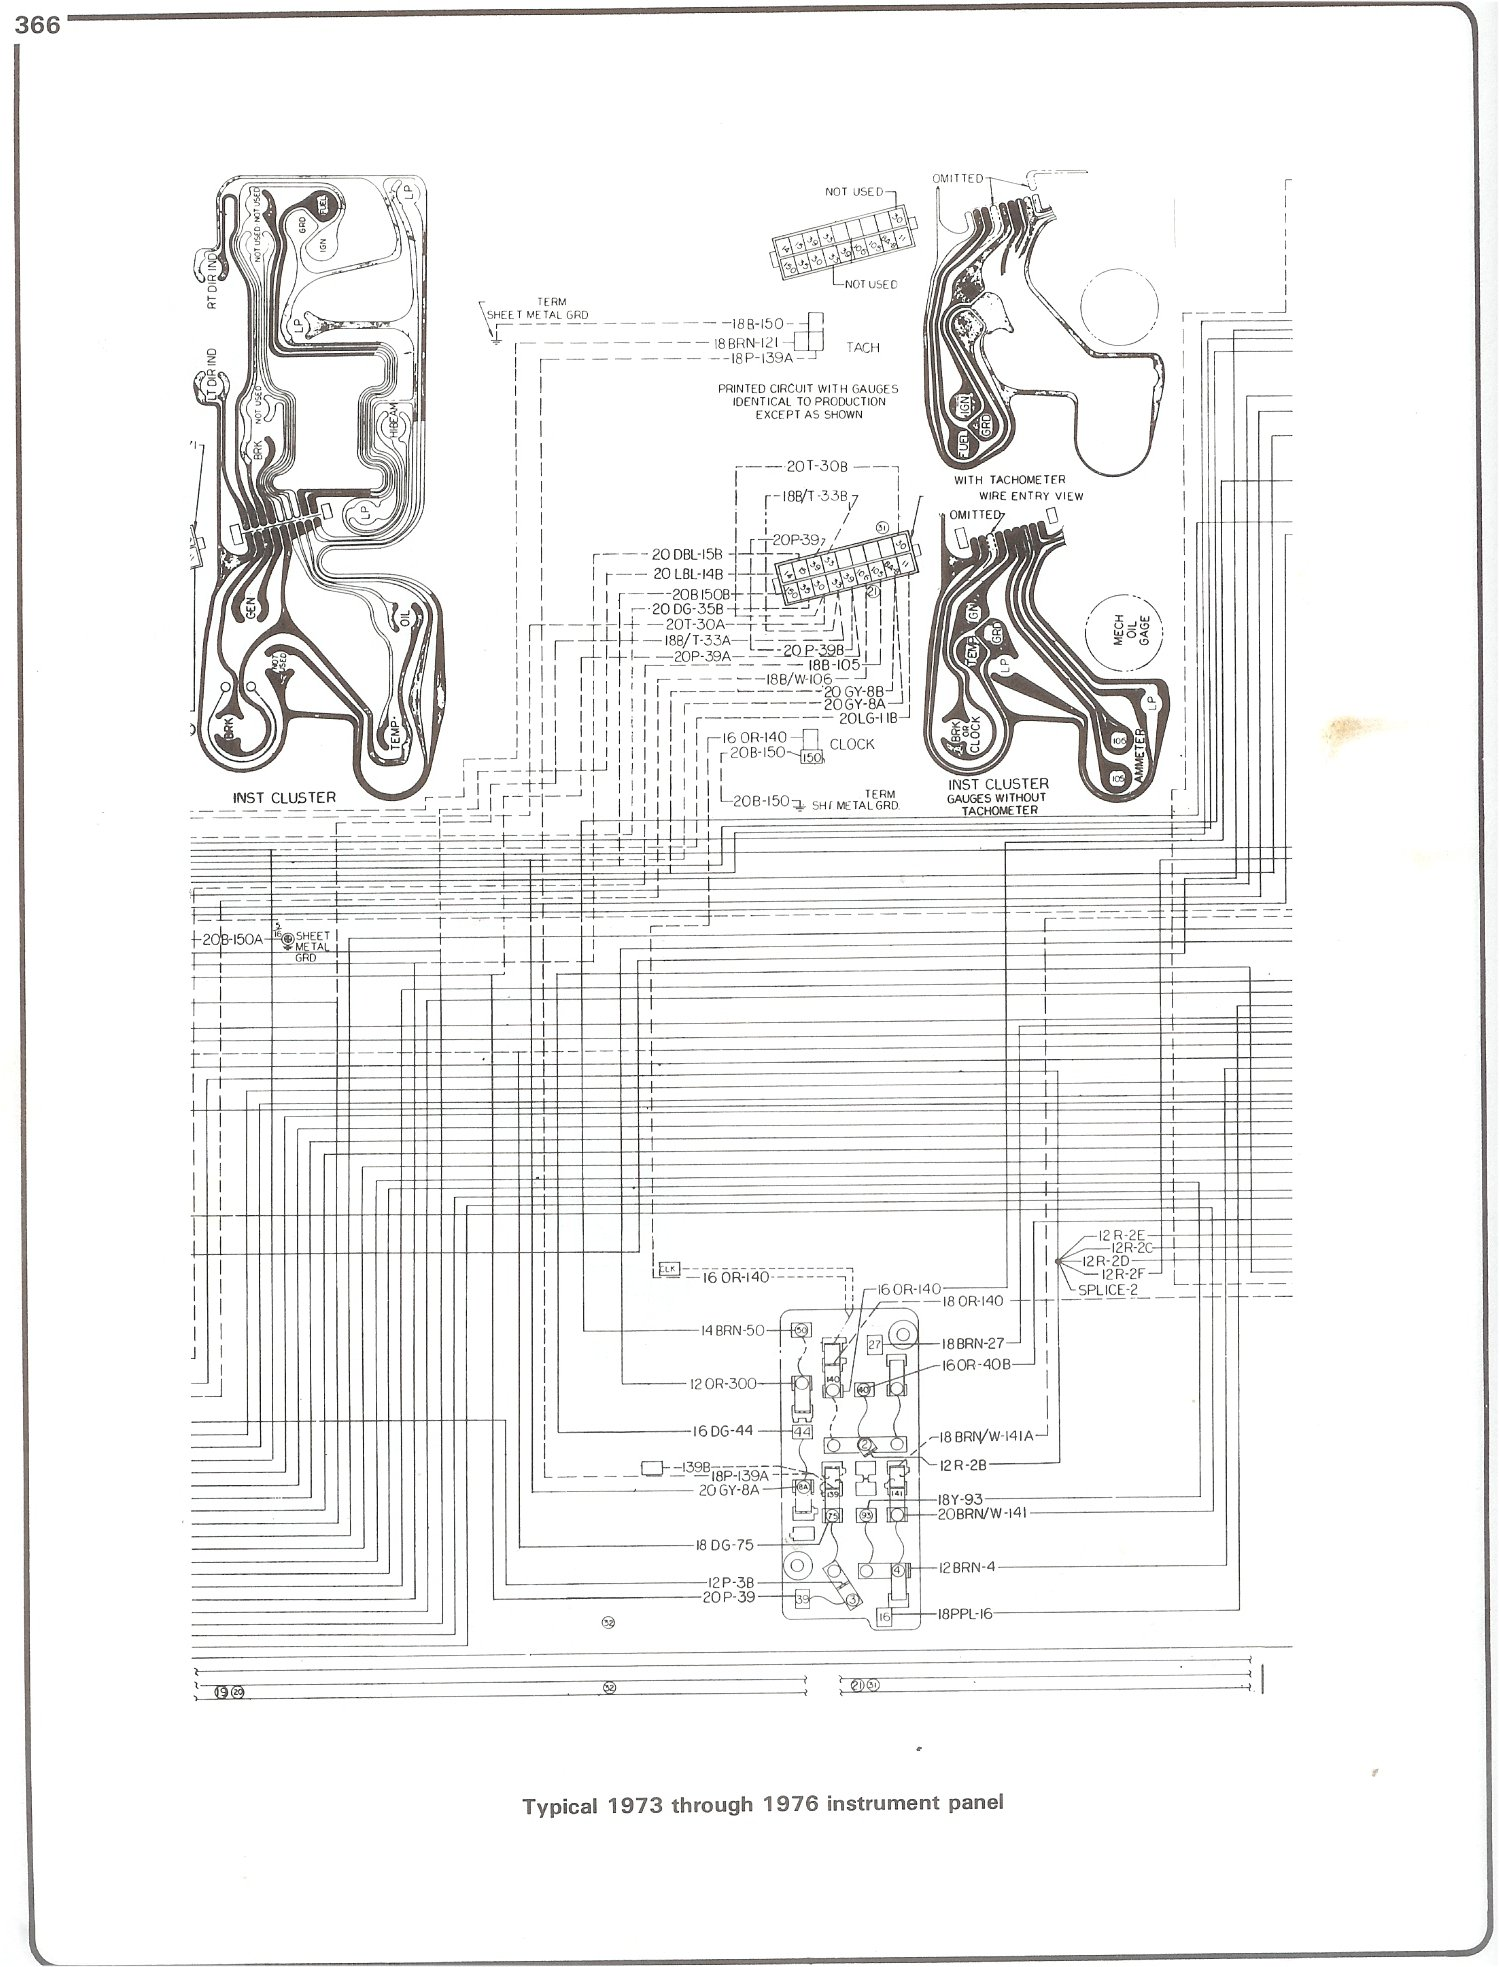 Complete 73 87 Wiring Diagrams Diagram In Addition Honda Civic Power Window 76 Instrument Cluster